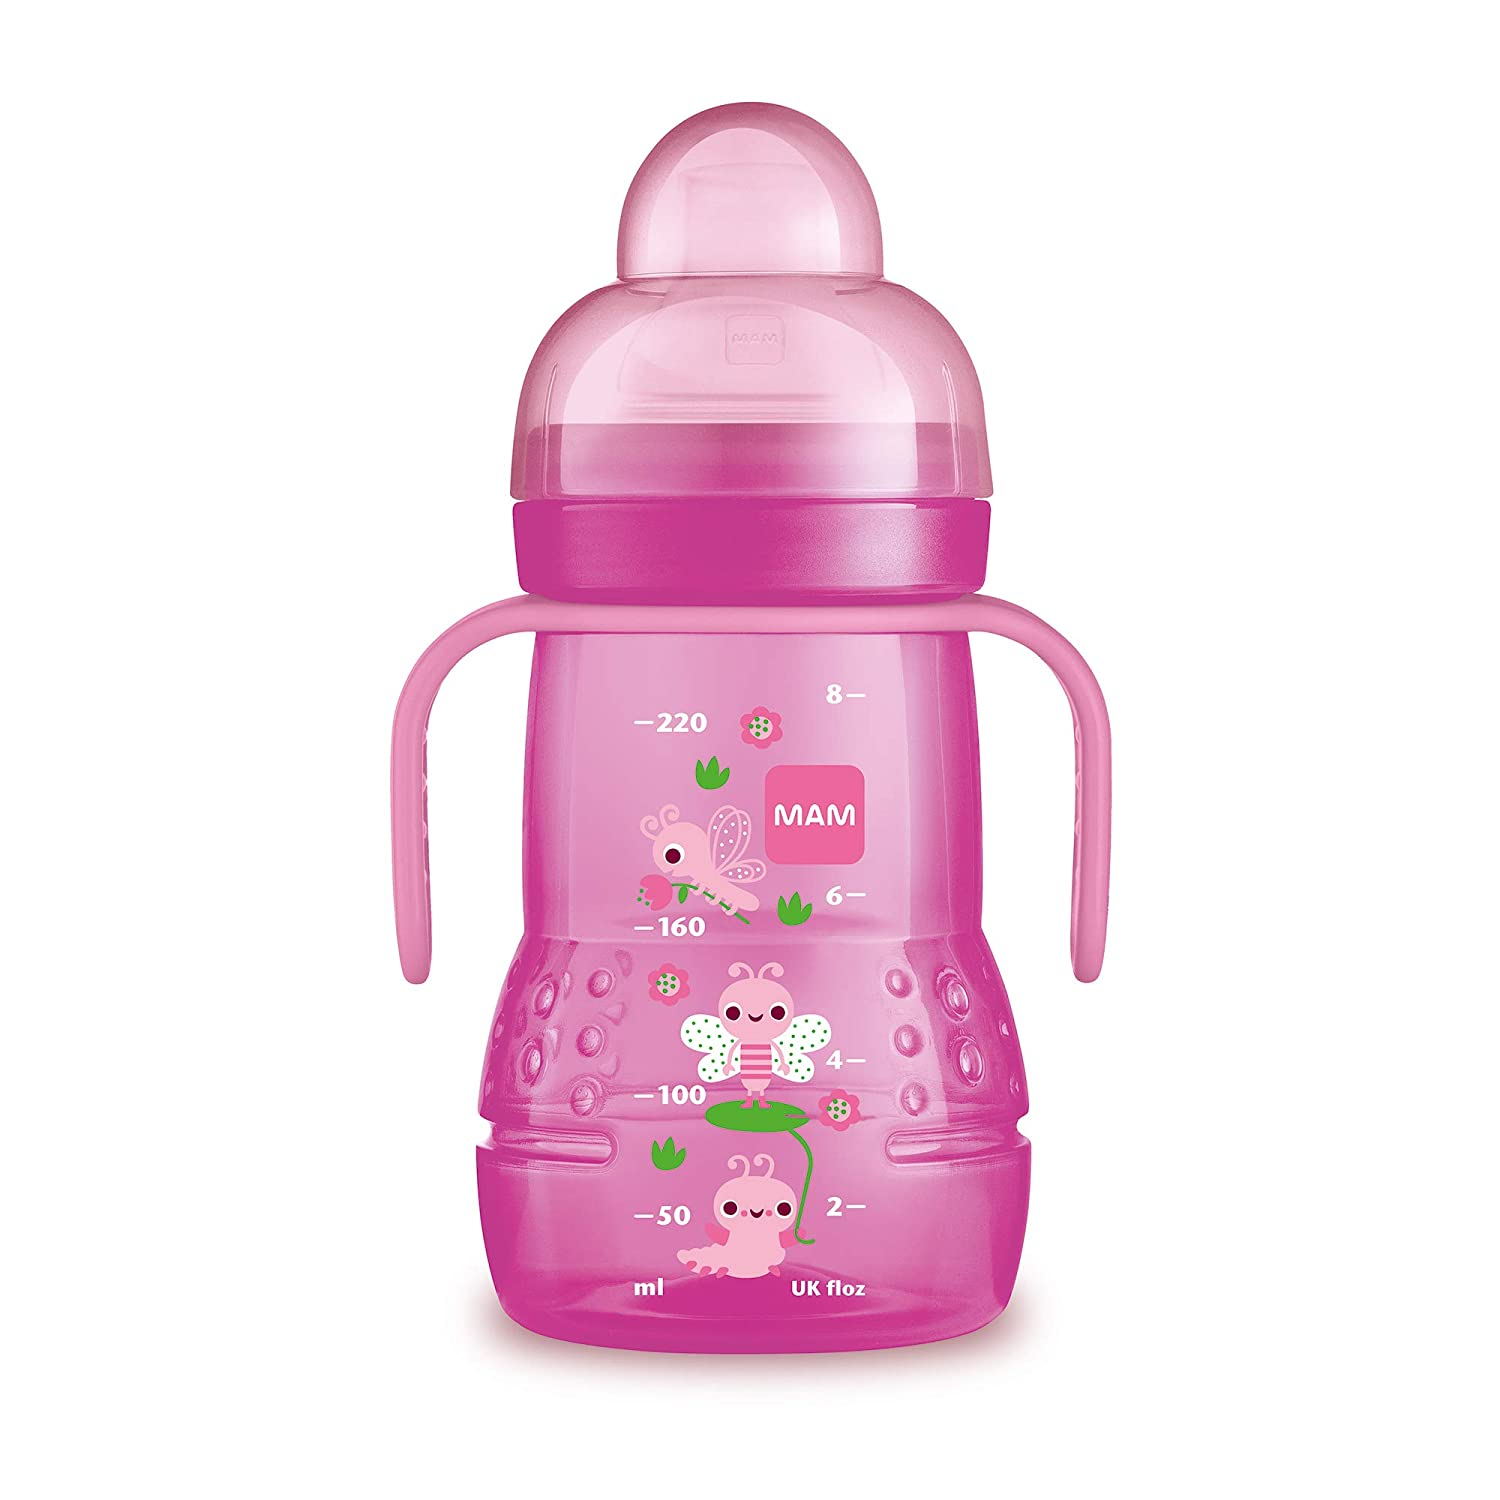 Top 9 Best Sippy Cup For 6 Month Old Breastfed Baby (2020 Reviews) 4